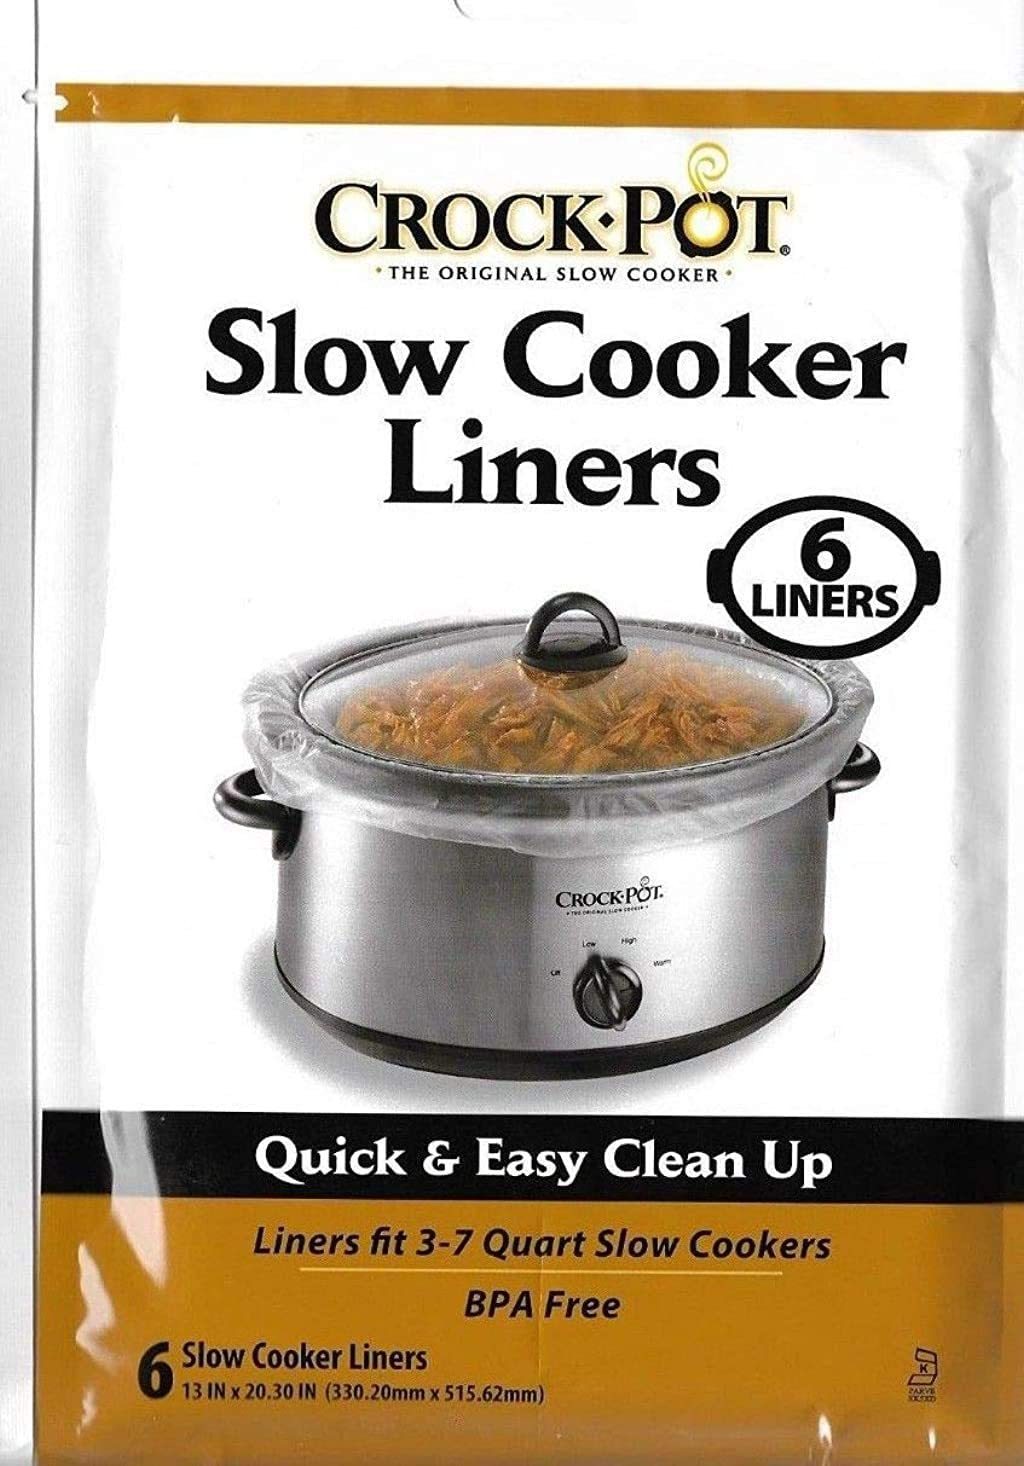 Crock Pot Slow Cooker Liners, 30 Liners fit 3-7 Quart (5 packs of 6 count)